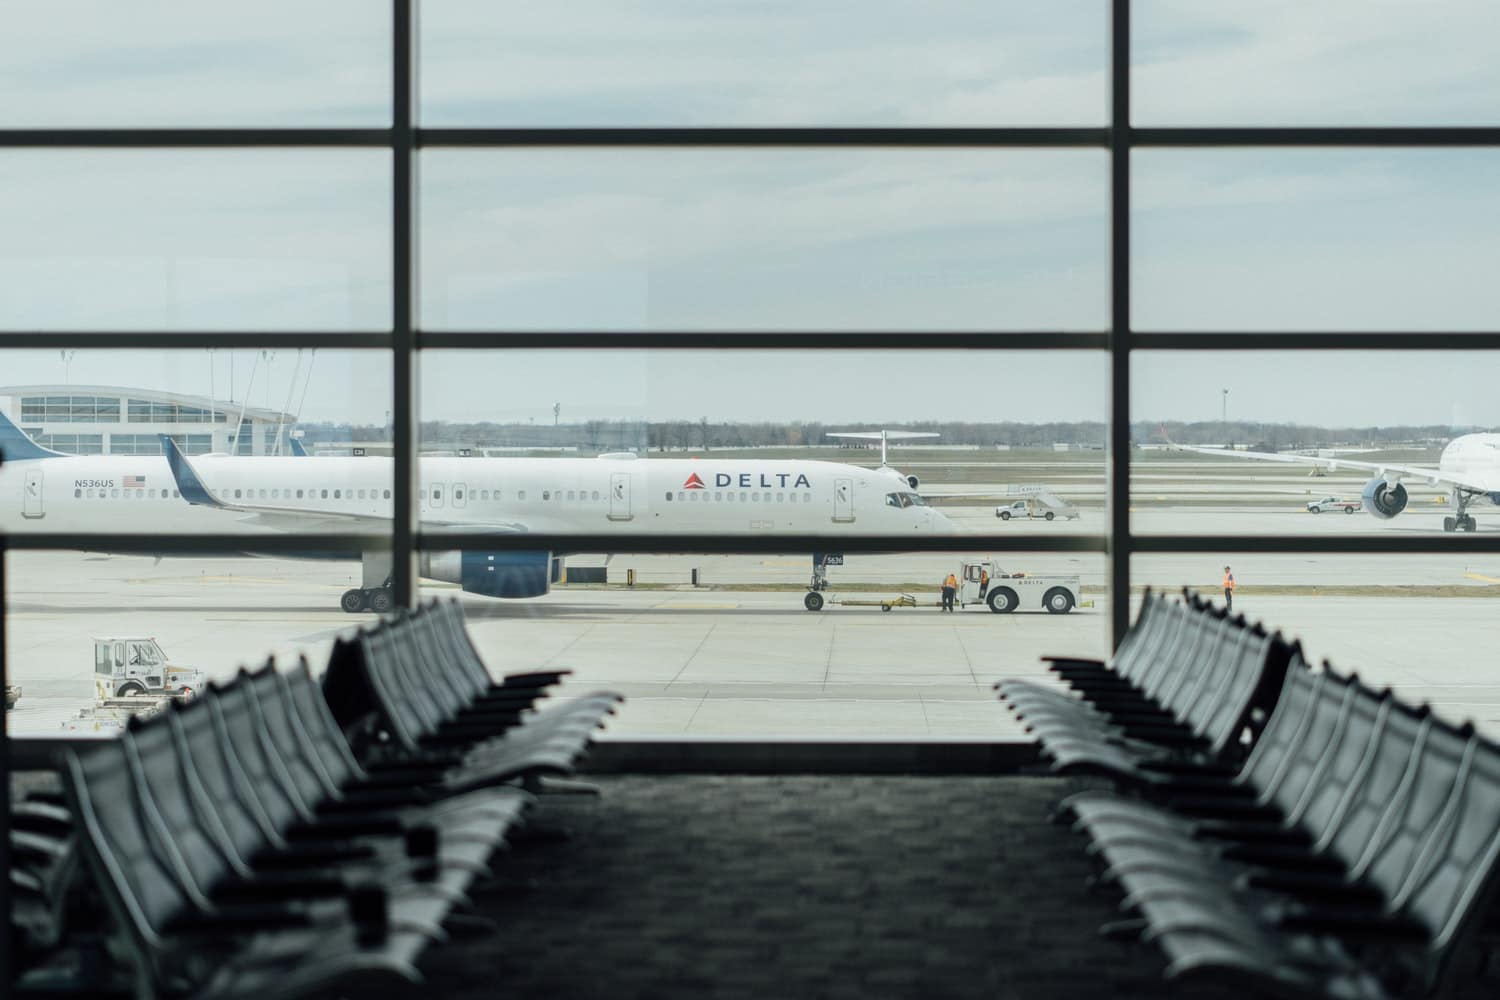 Delta Airplane On Airport